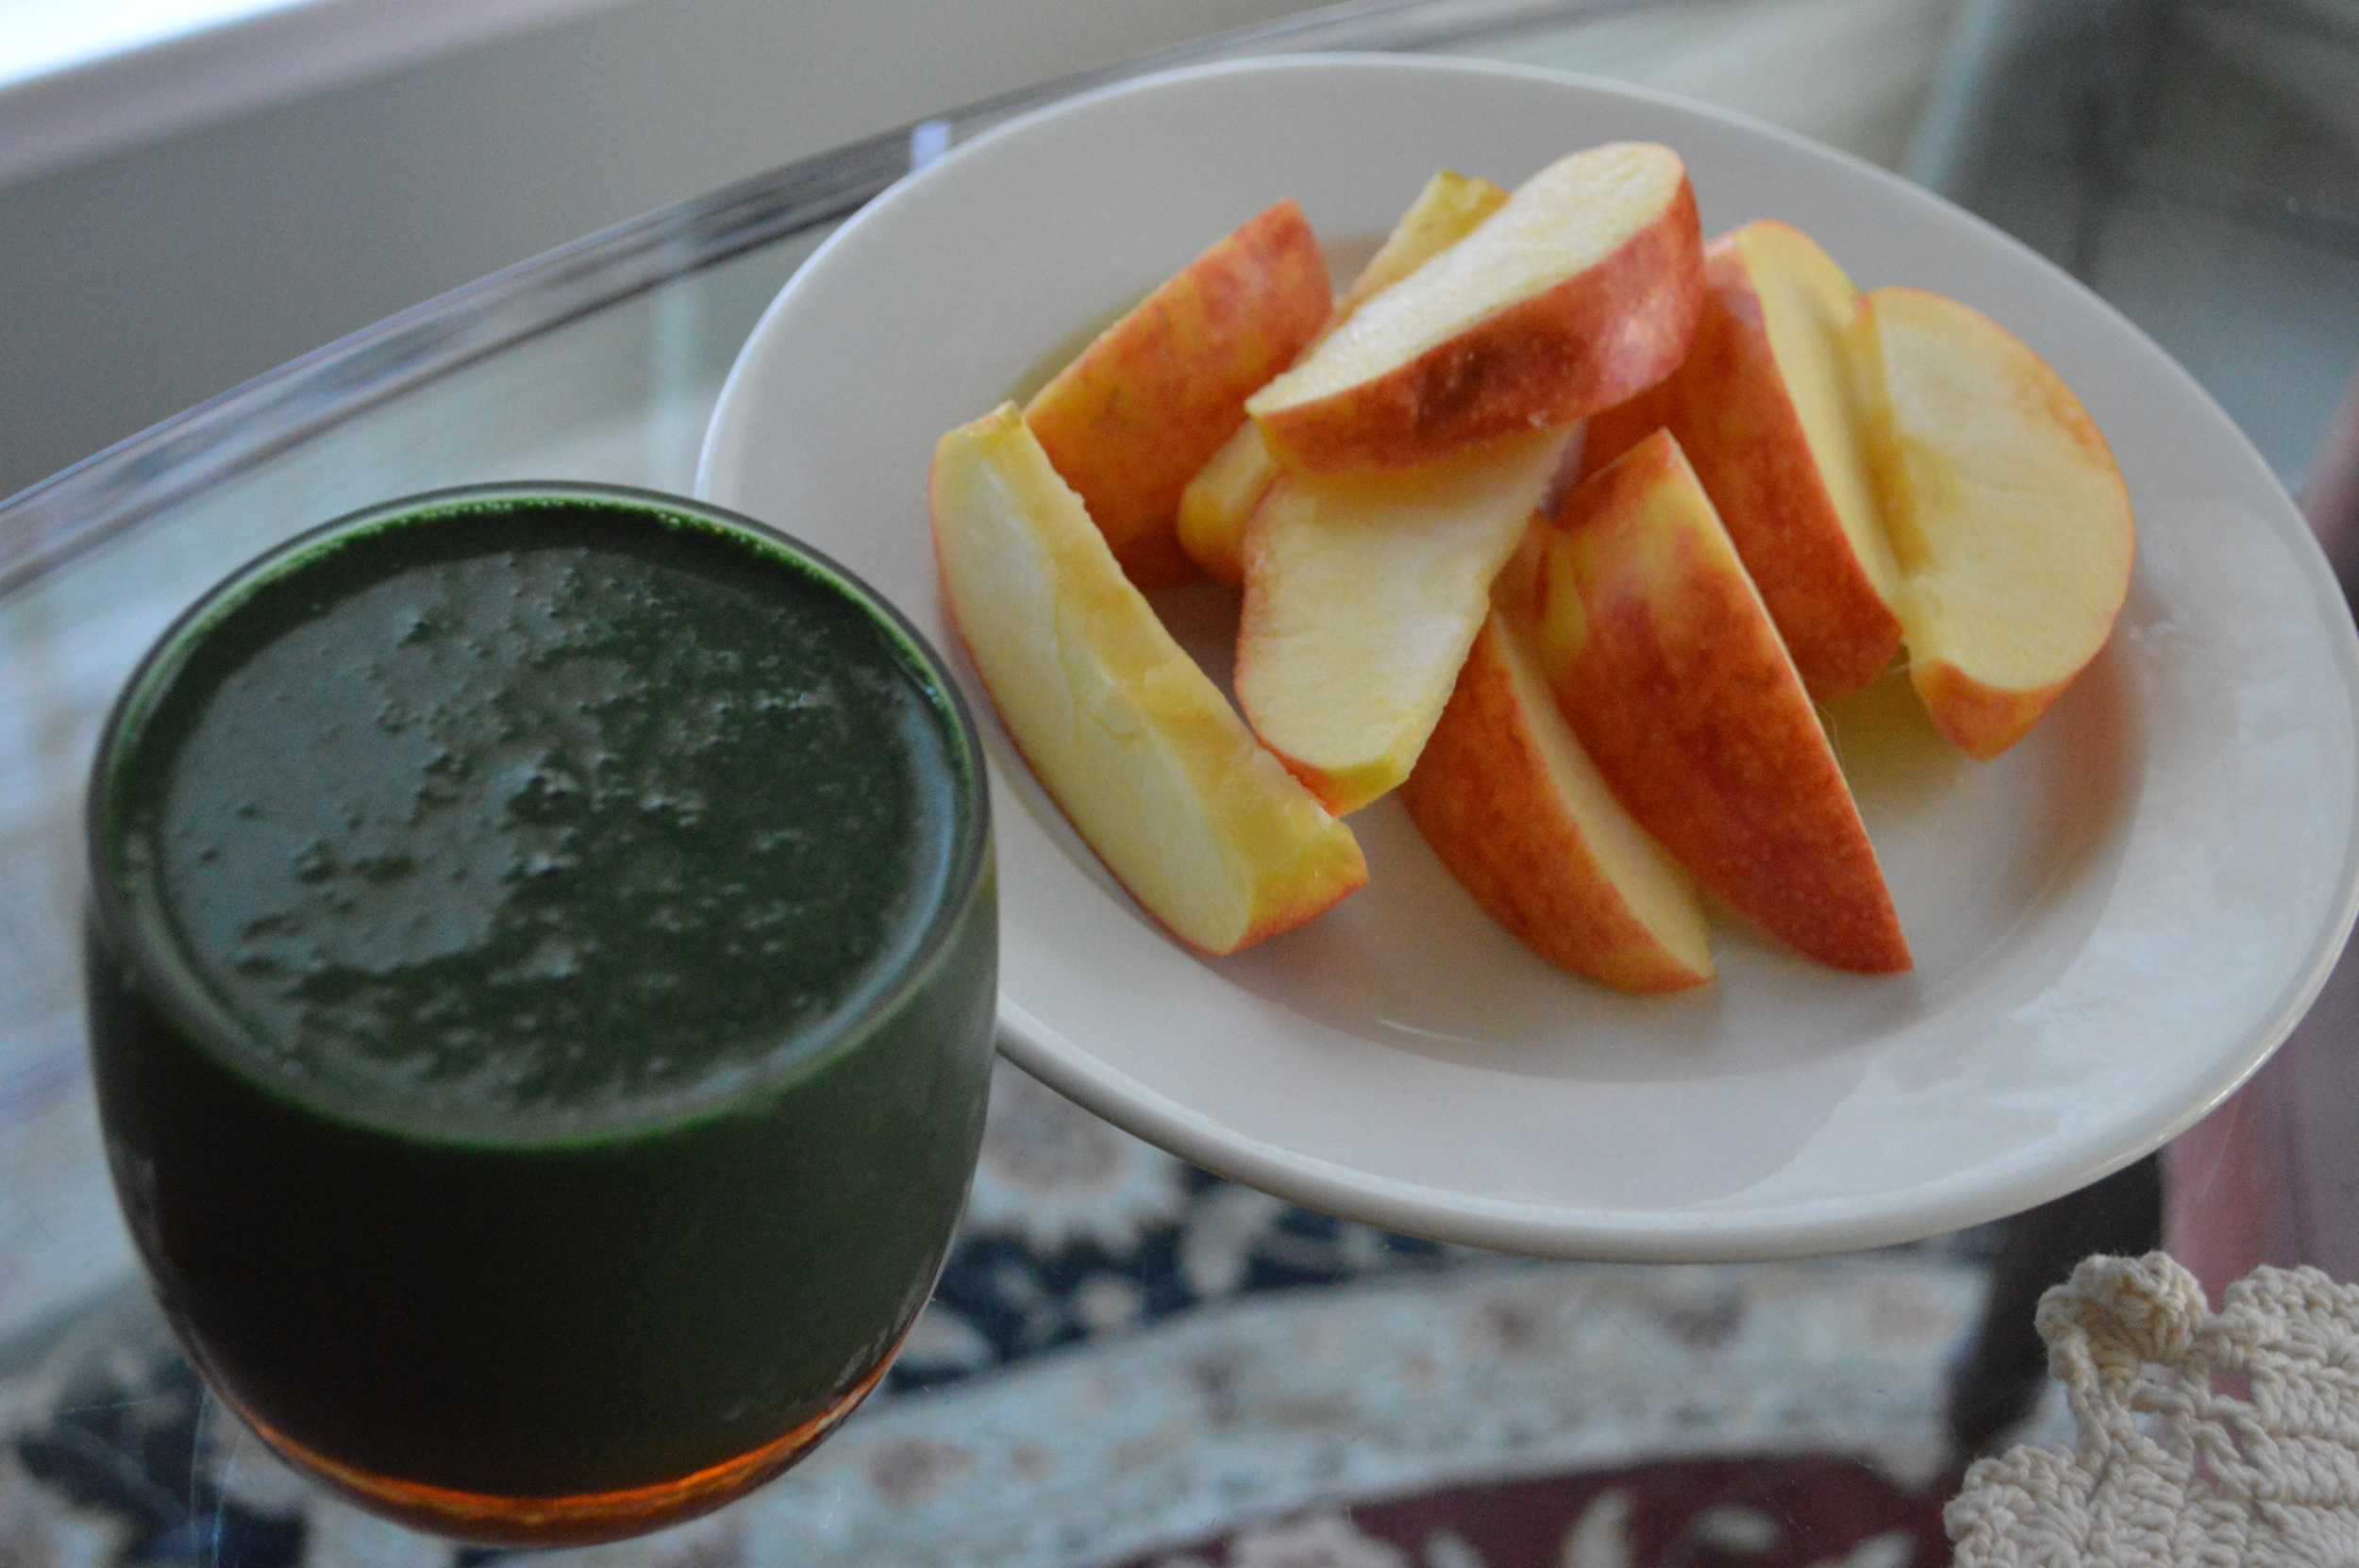 Apple + Spirulina Smoothie